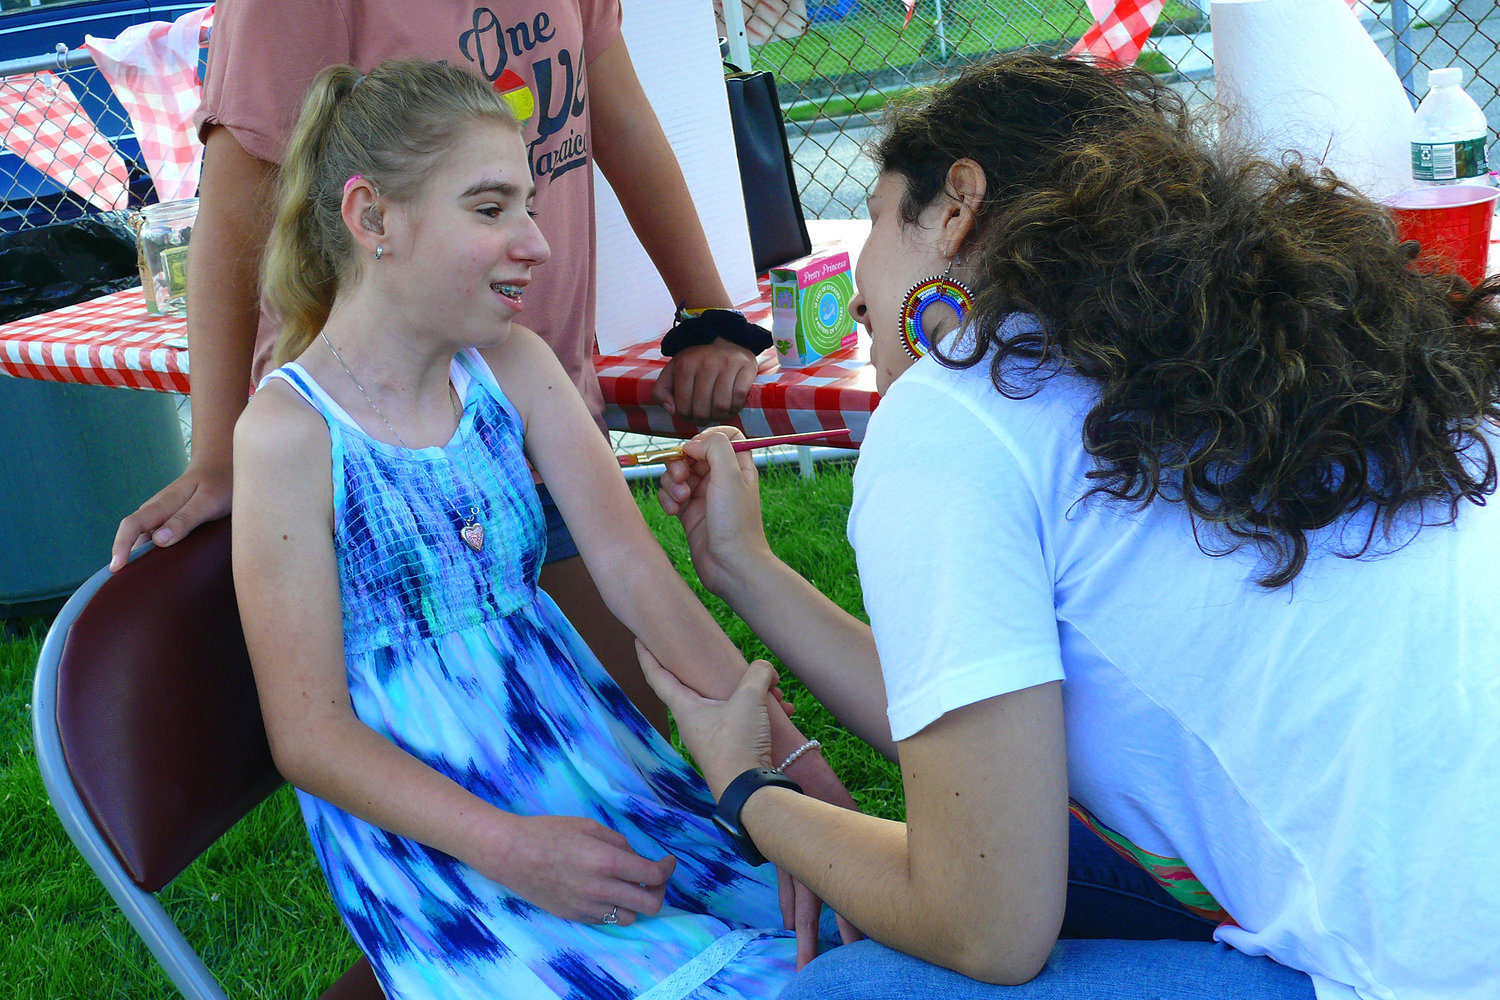 Olivia Mauro, daughter of last year's renovation recipient Keith Mauro, had her arm painted by artist Camila Merchan.